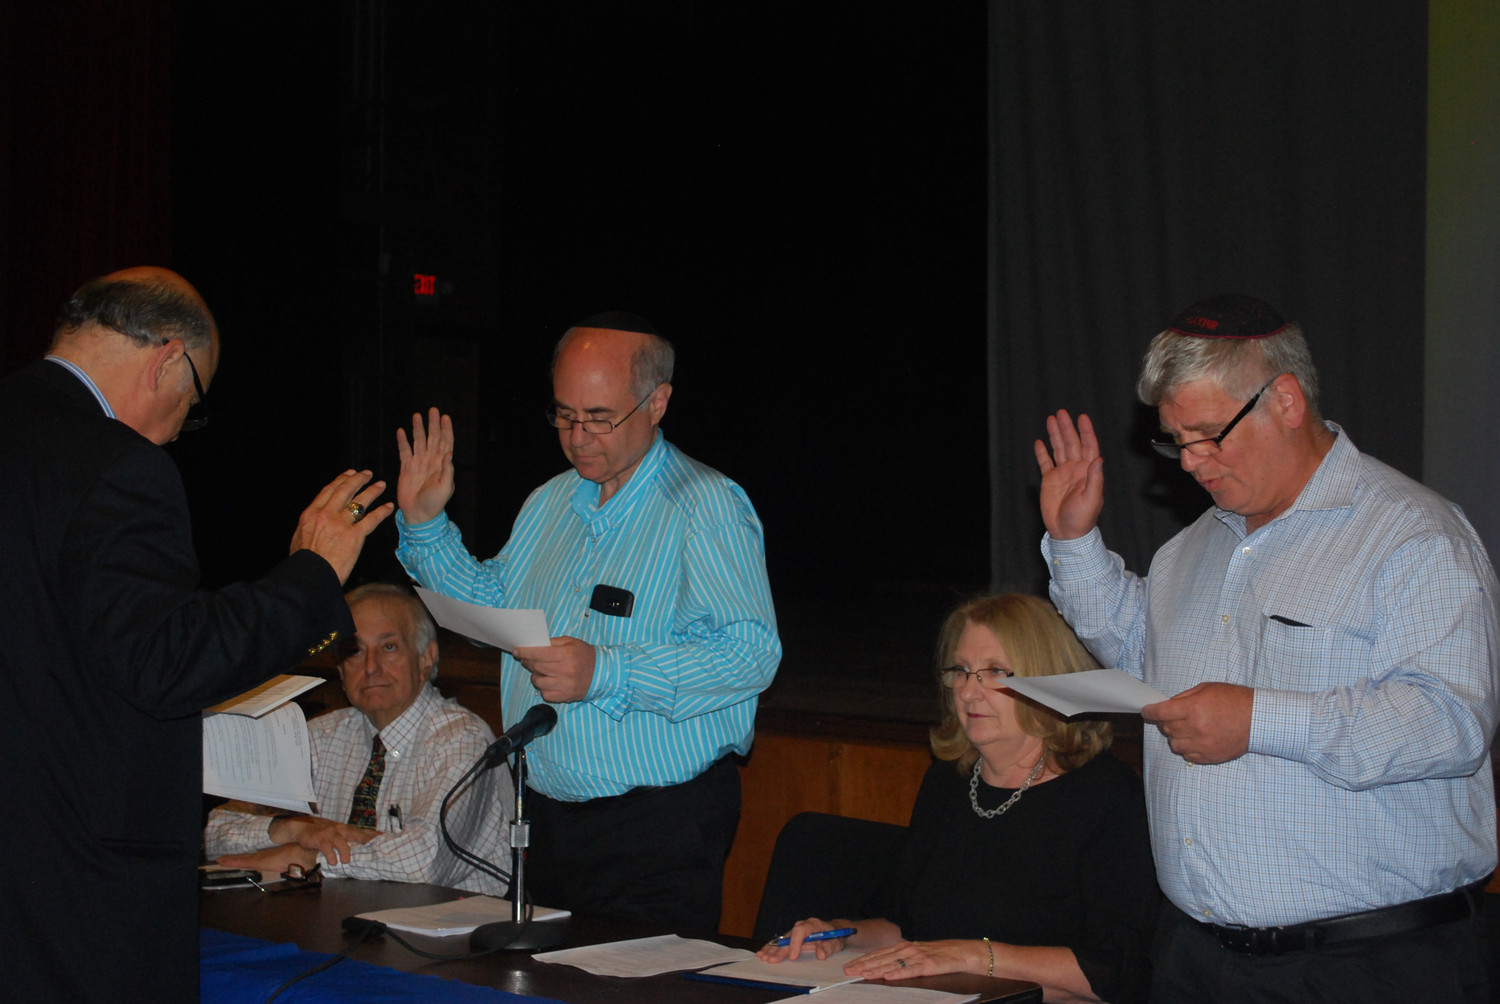 Al D'Agostino, far left, the Lawrence School District attorney, administered the oaths office to Board of Education President Murray Forman, center, and Vice President Dr. Asher Mansdorf. Trustee Dr. David Sussman is at left, and also sitting is Superintendent Dr. Ann Pedersen.